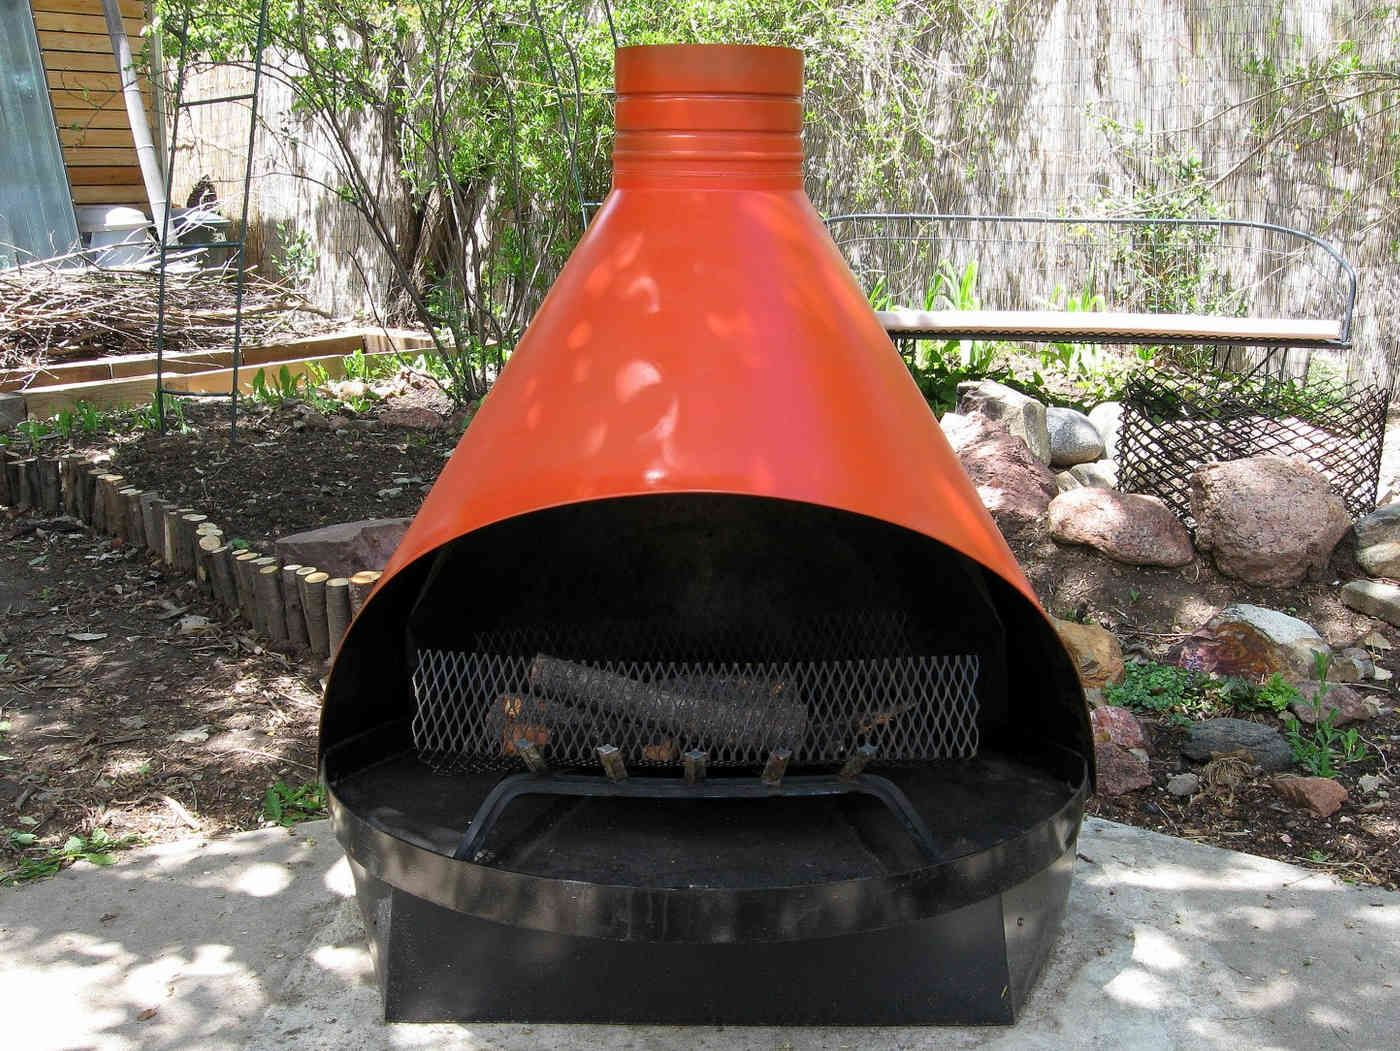 Outdoor Metal Fireplace Images Pictures Nearpics Modern Outdoor Fireplace Outdoor Fireplace Designs Metal Fireplace